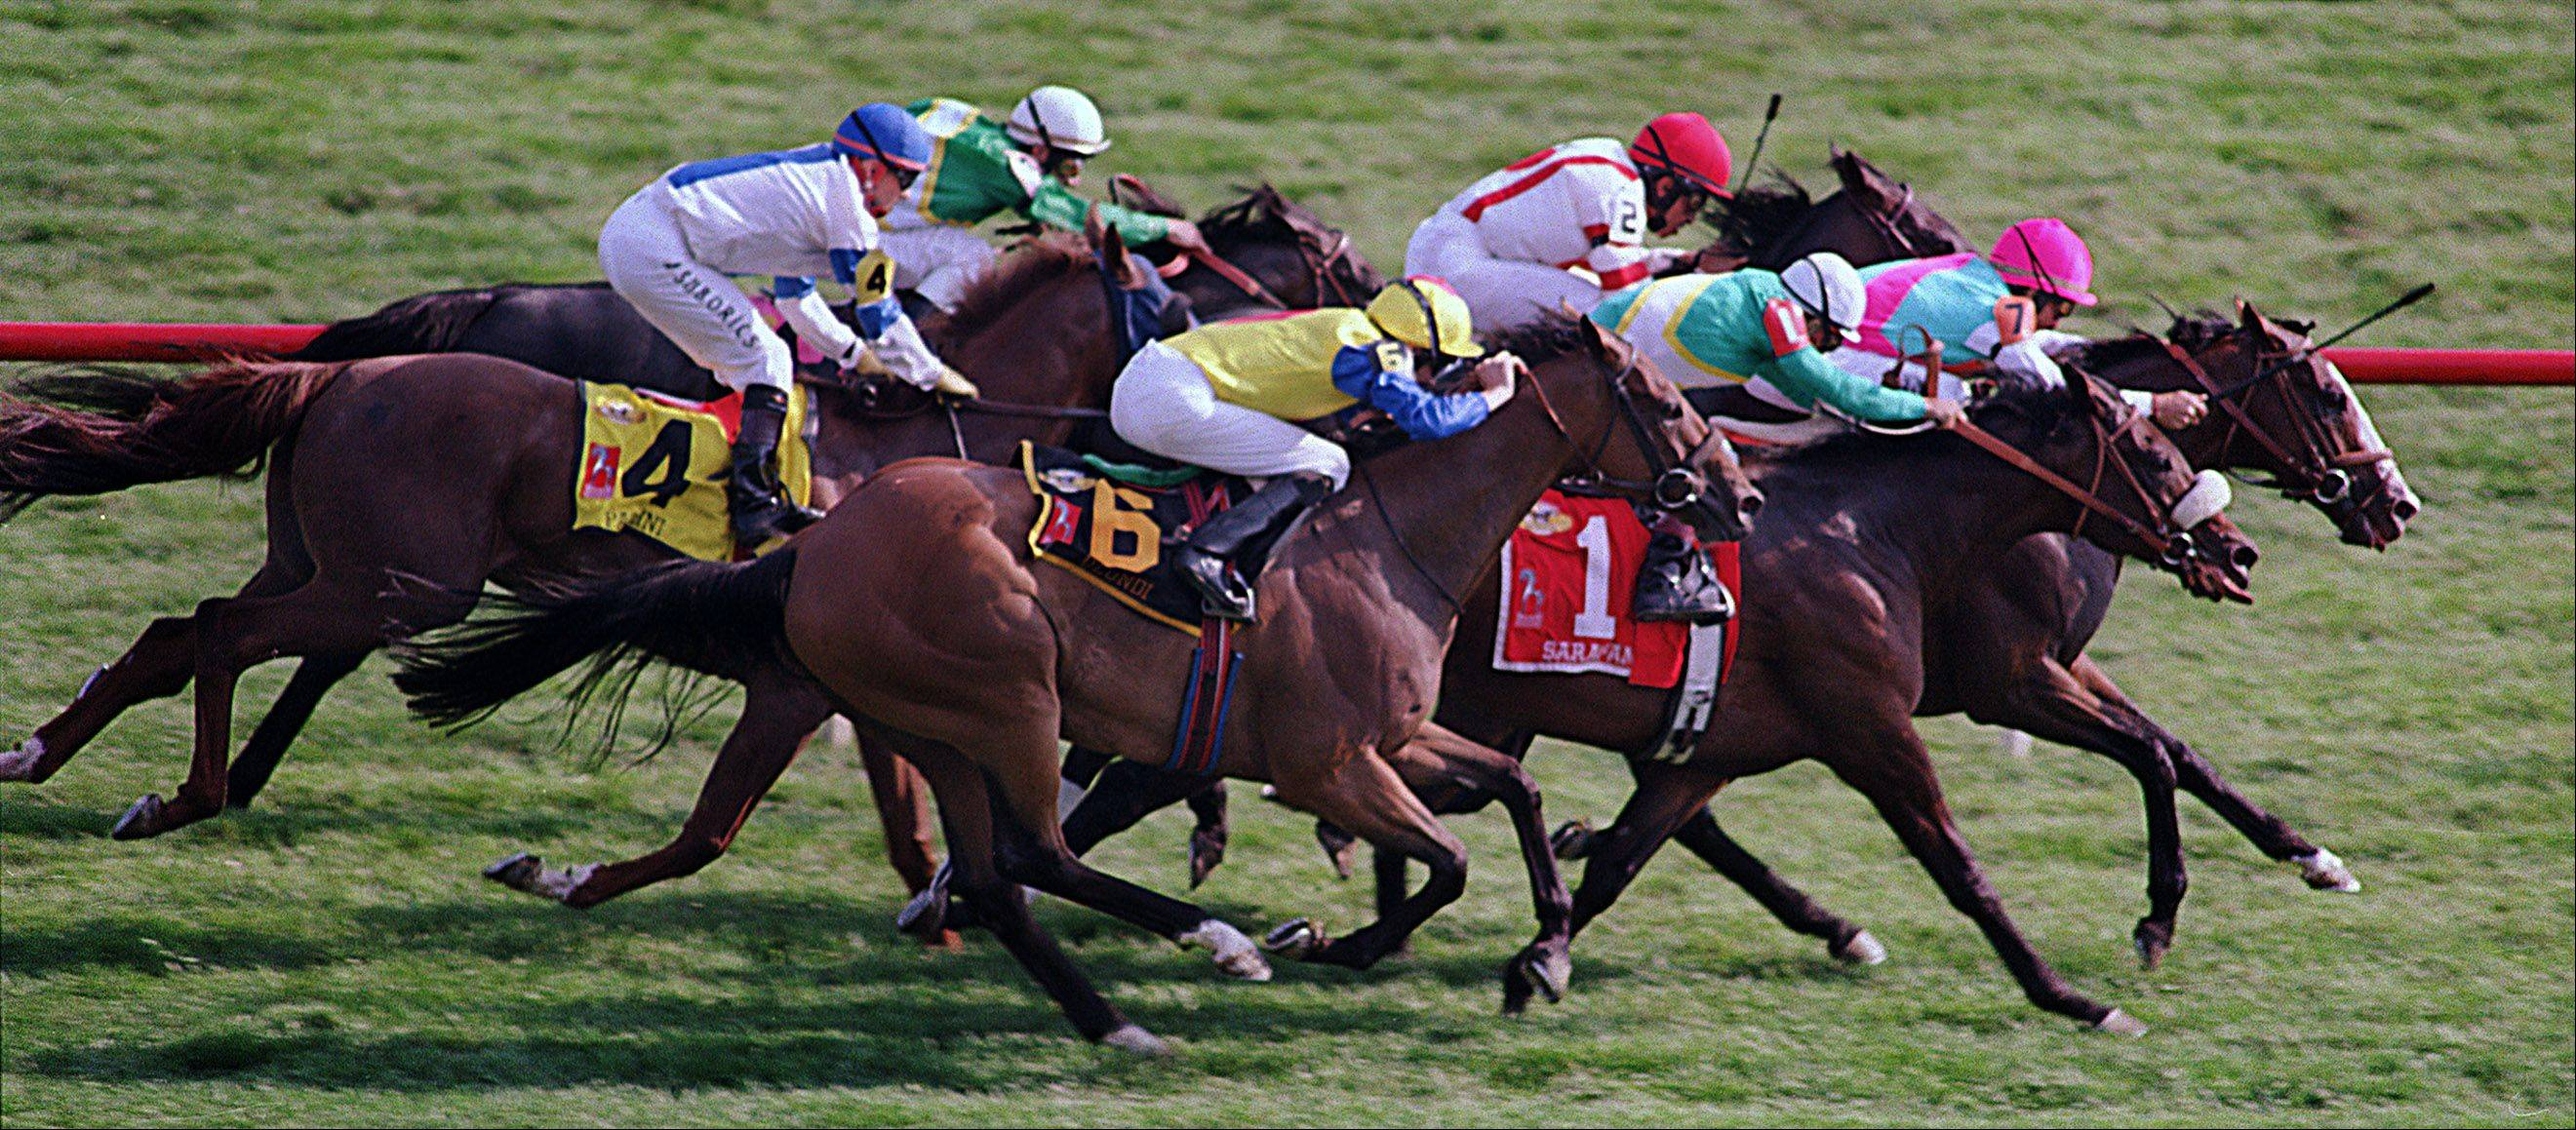 Arlington International Racecourse needs lawmakers to once again approve betting online or else its racing season could be cut.